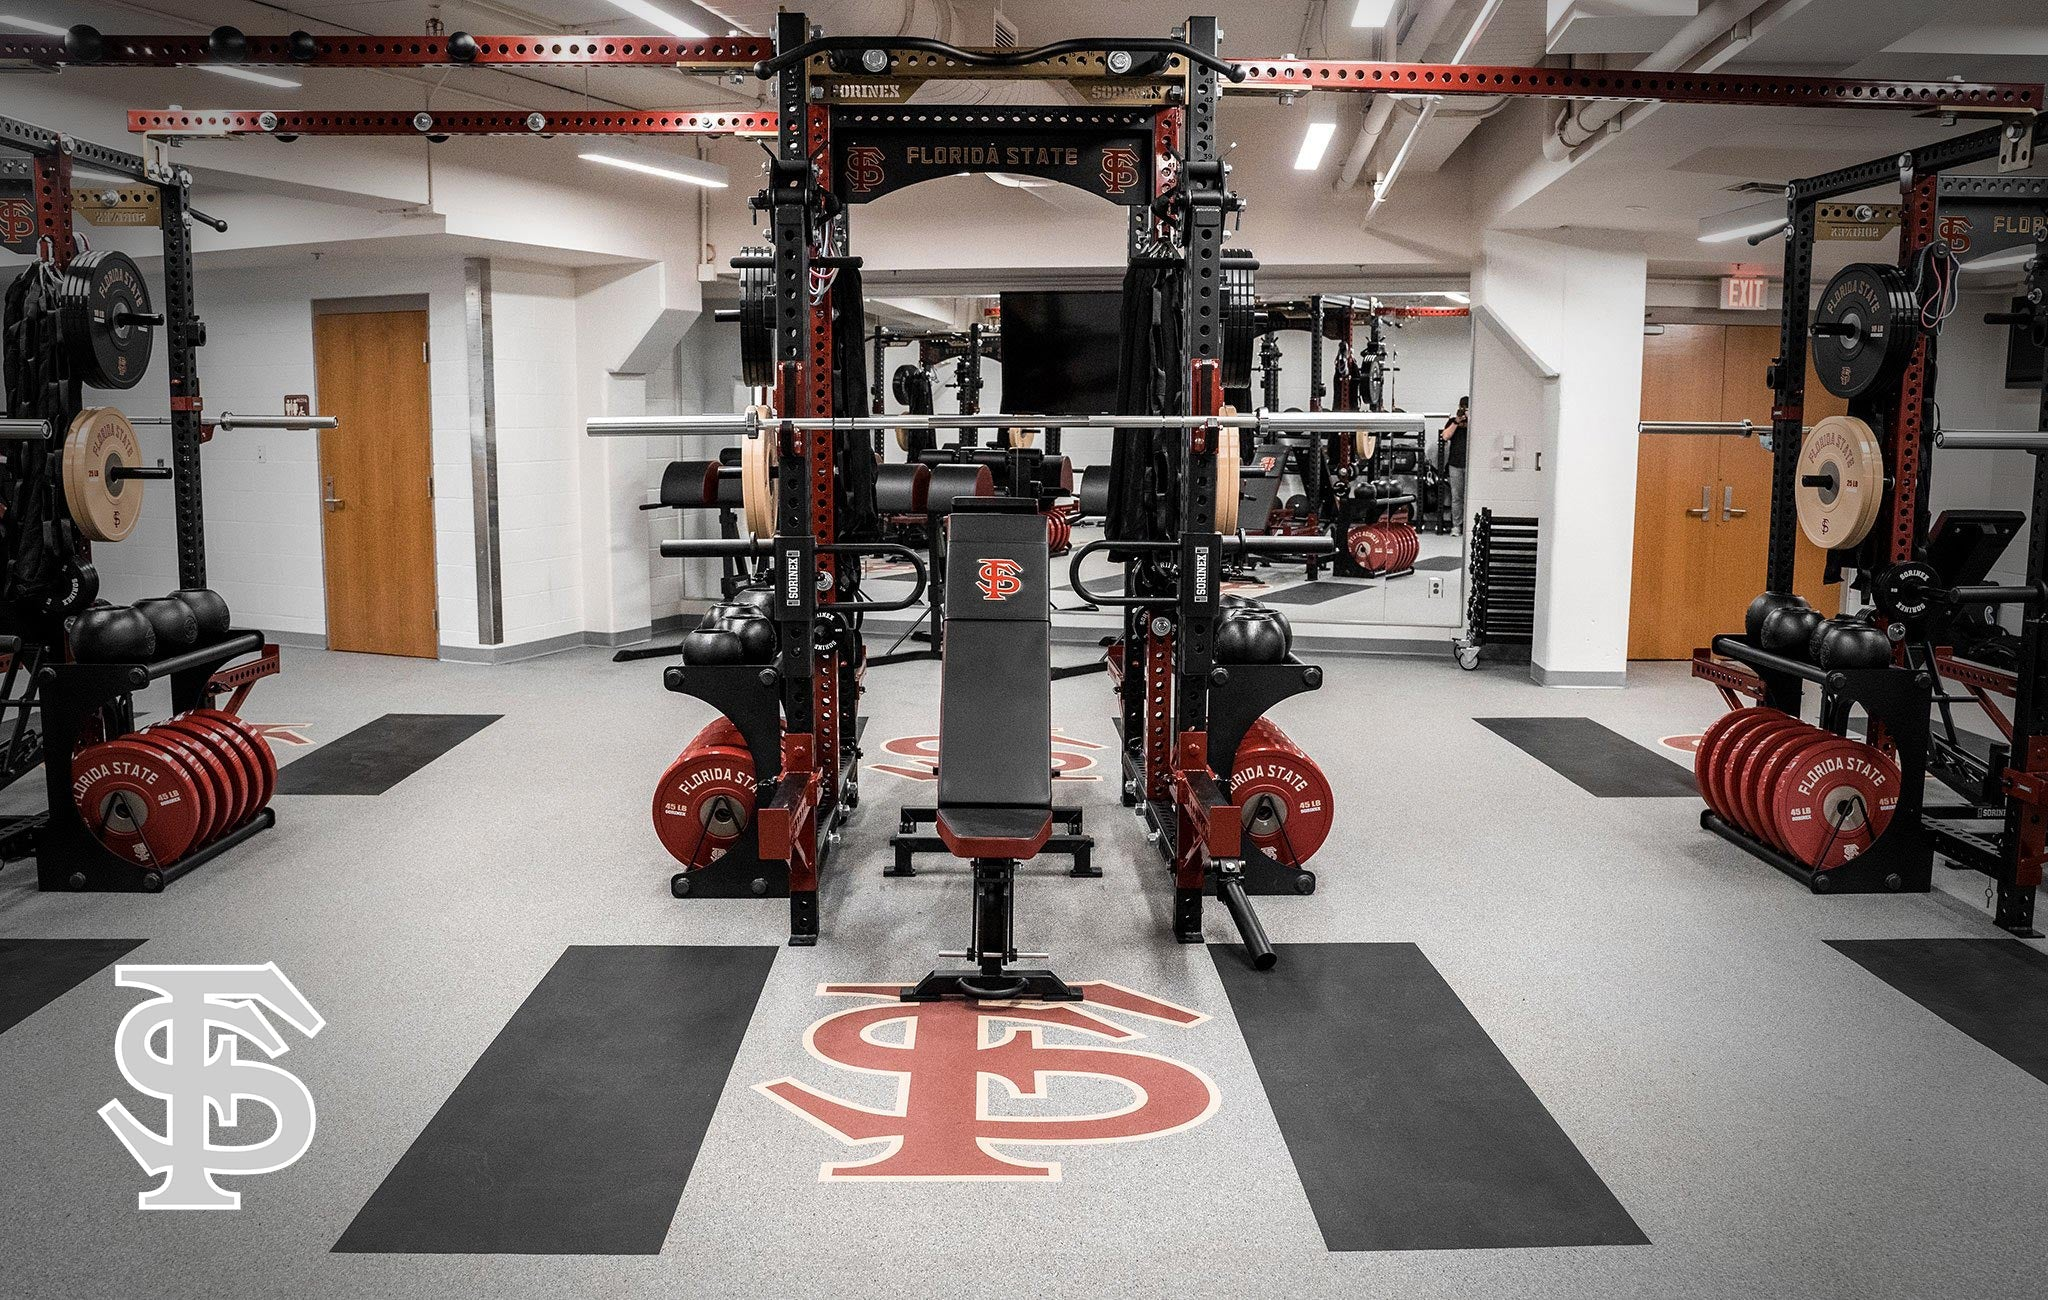 Florida State University Sorinex strength and conditioning facility